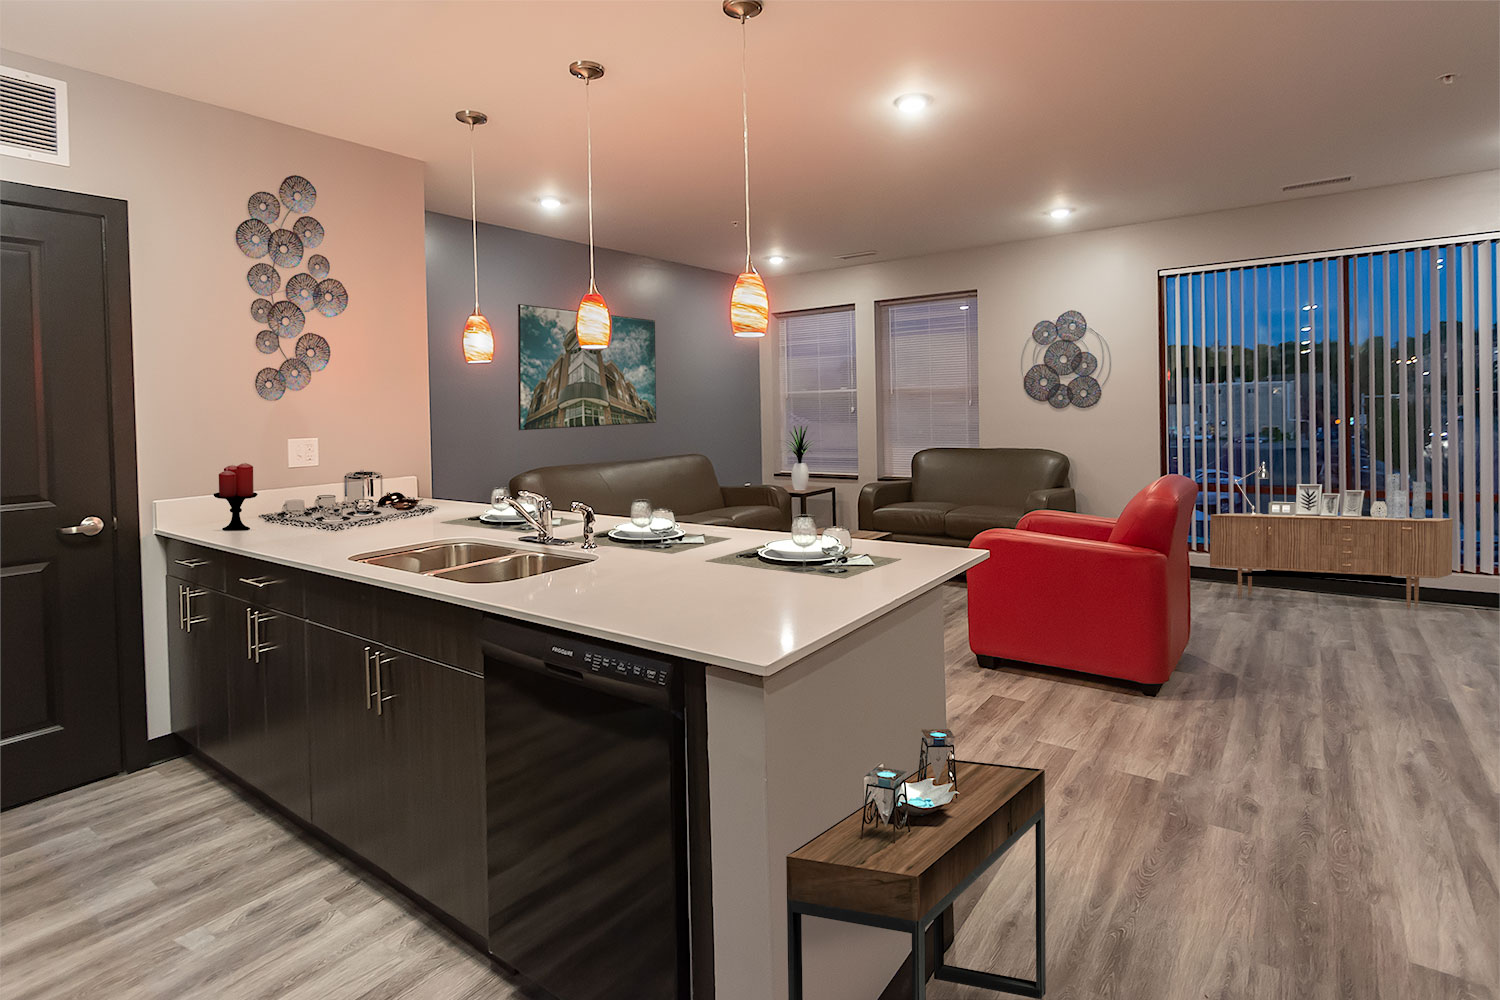 Cityside By Alexa Apartments Cedarview Management